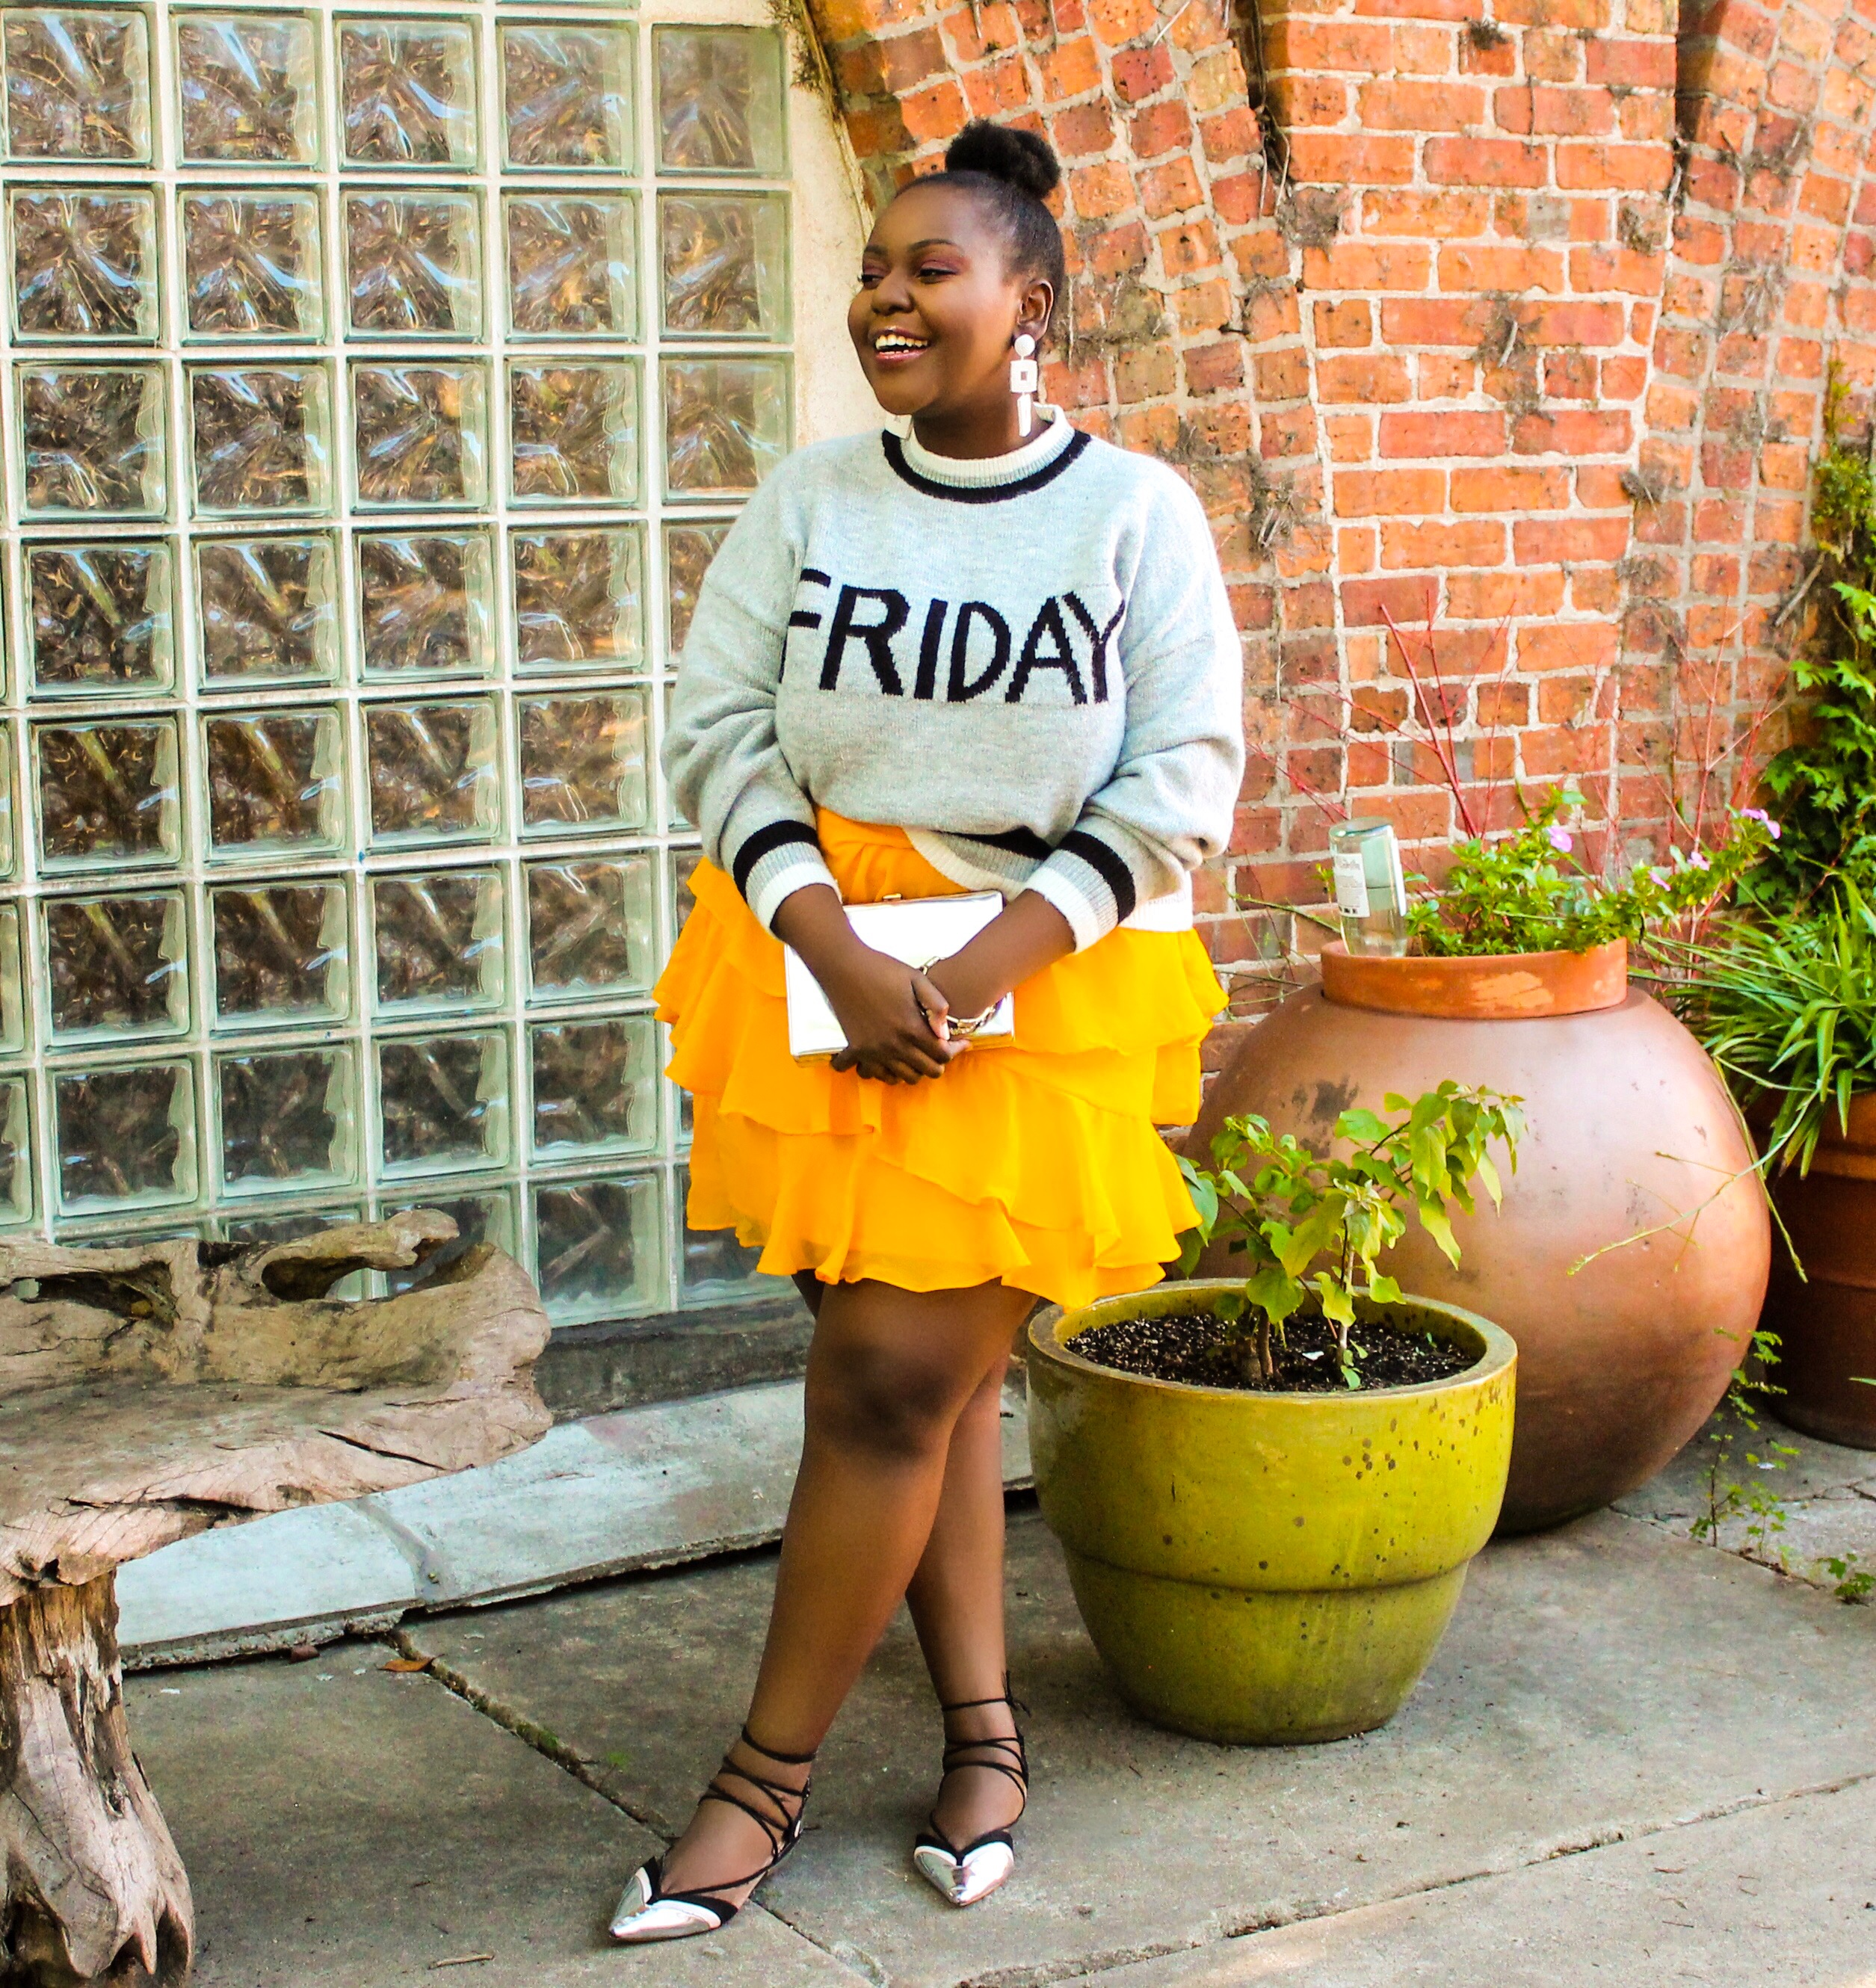 african travel blogger, preppy plus size fashion blogs 2017, beautiful curvy girls, how to fill the eye brow of a dark skin, beautiful plus size dark skin girls, plus size black bloggers, clothes for curvy girls, curvy girl fashion clothing, plus blog, plus size fashion tips, plus size women blog, curvy women fashion, plus blog, curvy girl fashion blog, style plus curves, plus size fashion instagram, curvy girl blog, bbw blog, plus size street fashion, plus size beauty blog, plus size fashion ideas, curvy girl summer outfits, plus size fashion magazine, plus fashion bloggers, zara, Rosie the riveter shirt; Emilia embroidered beaded clutch; Vince Camuto heels; Lula shell drop earrings; Aldo Galigossi sunnies, tenge collection, codexmode, zara, asos